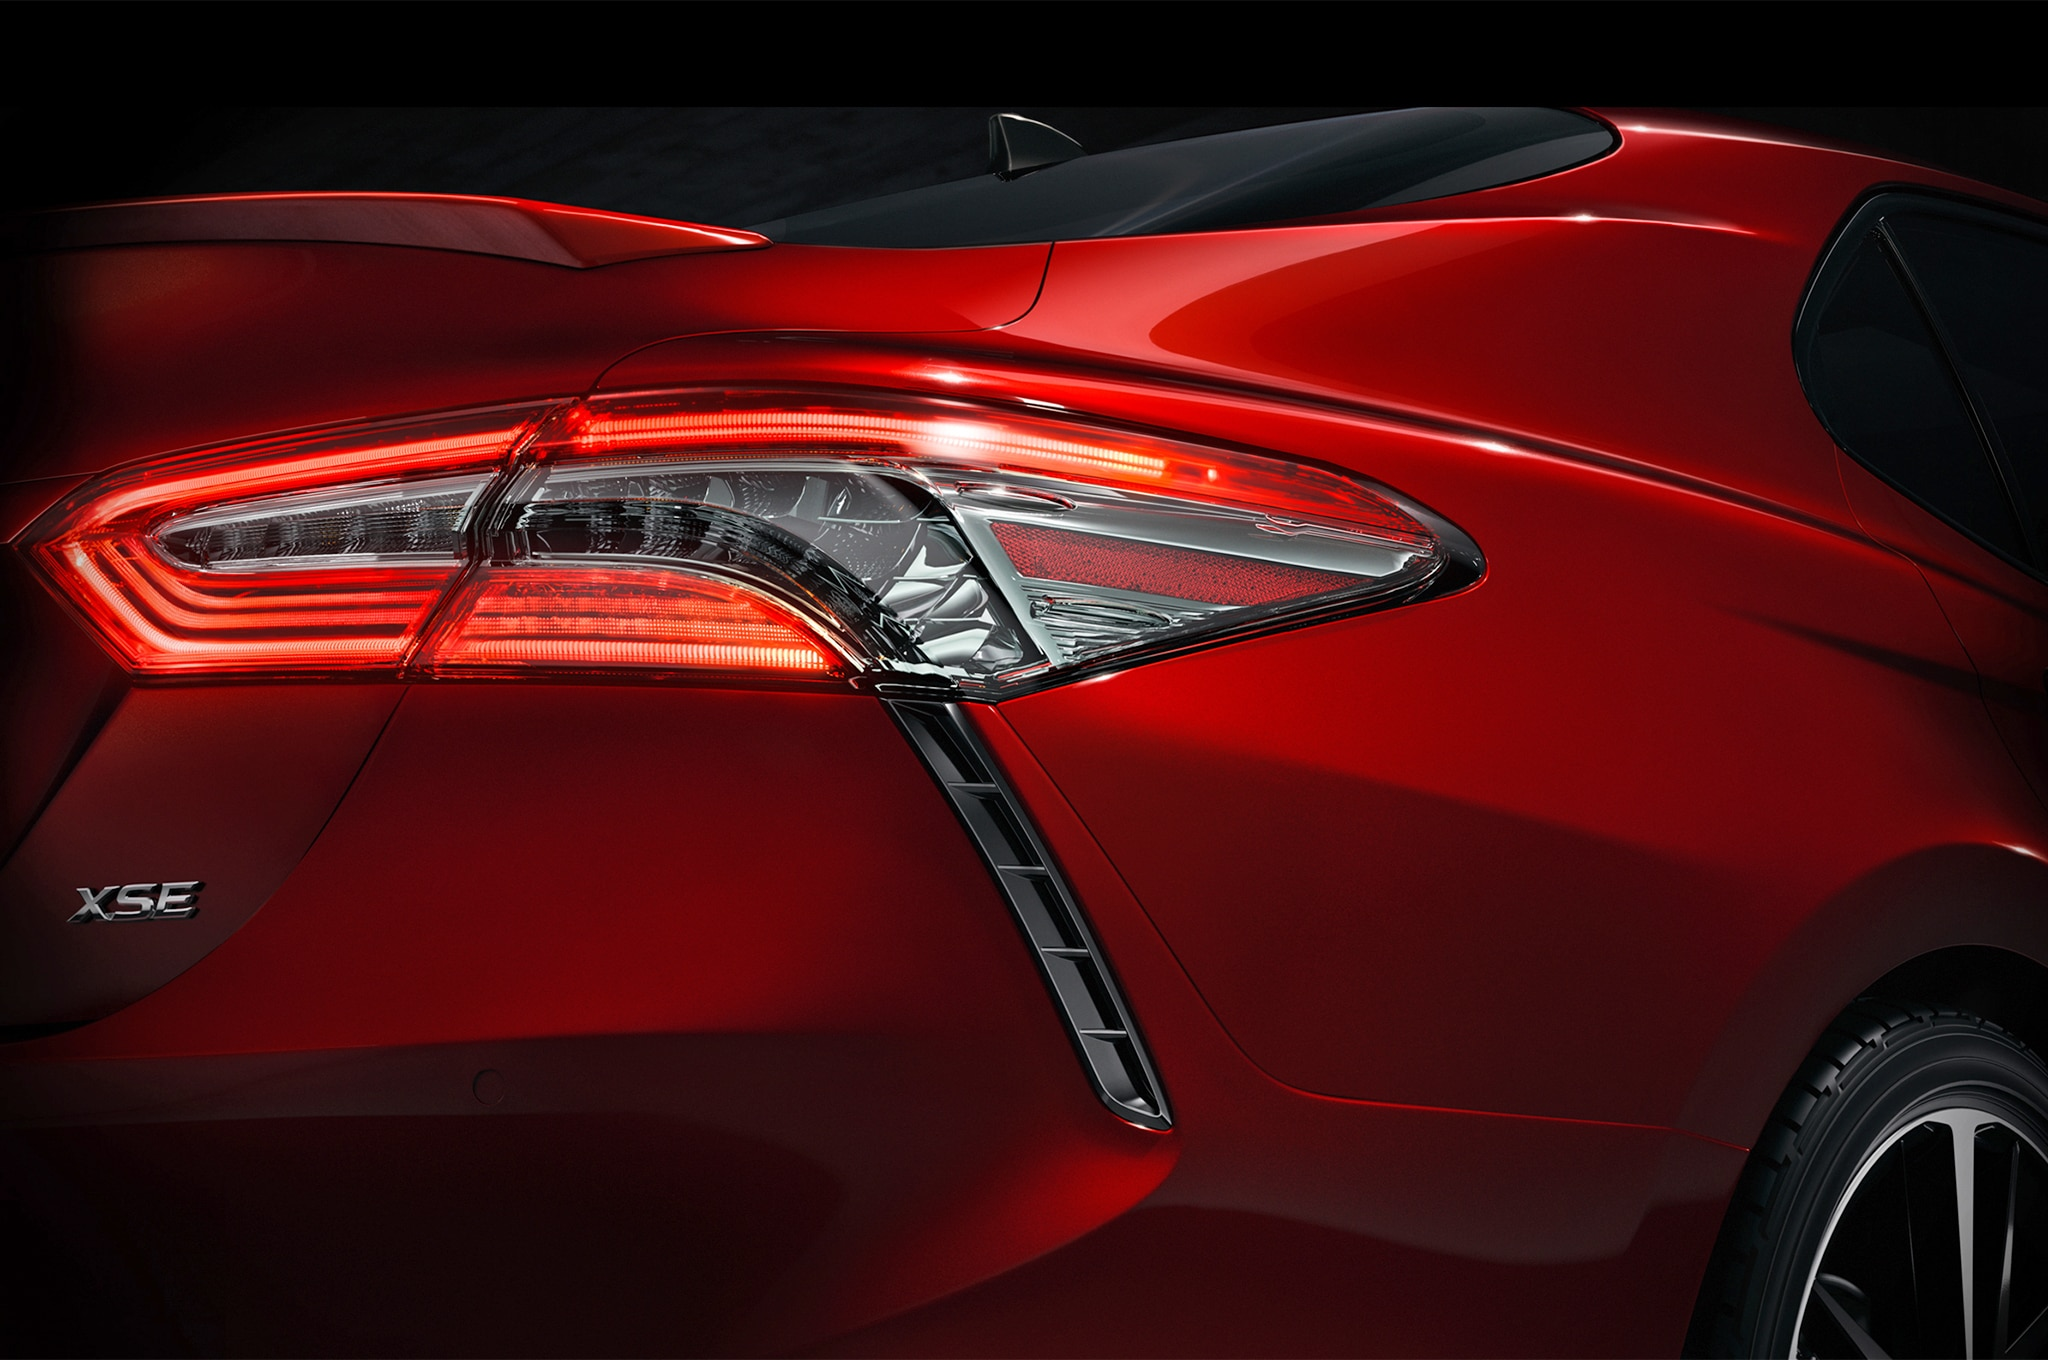 2018 Toyota Camry XSE Teaser